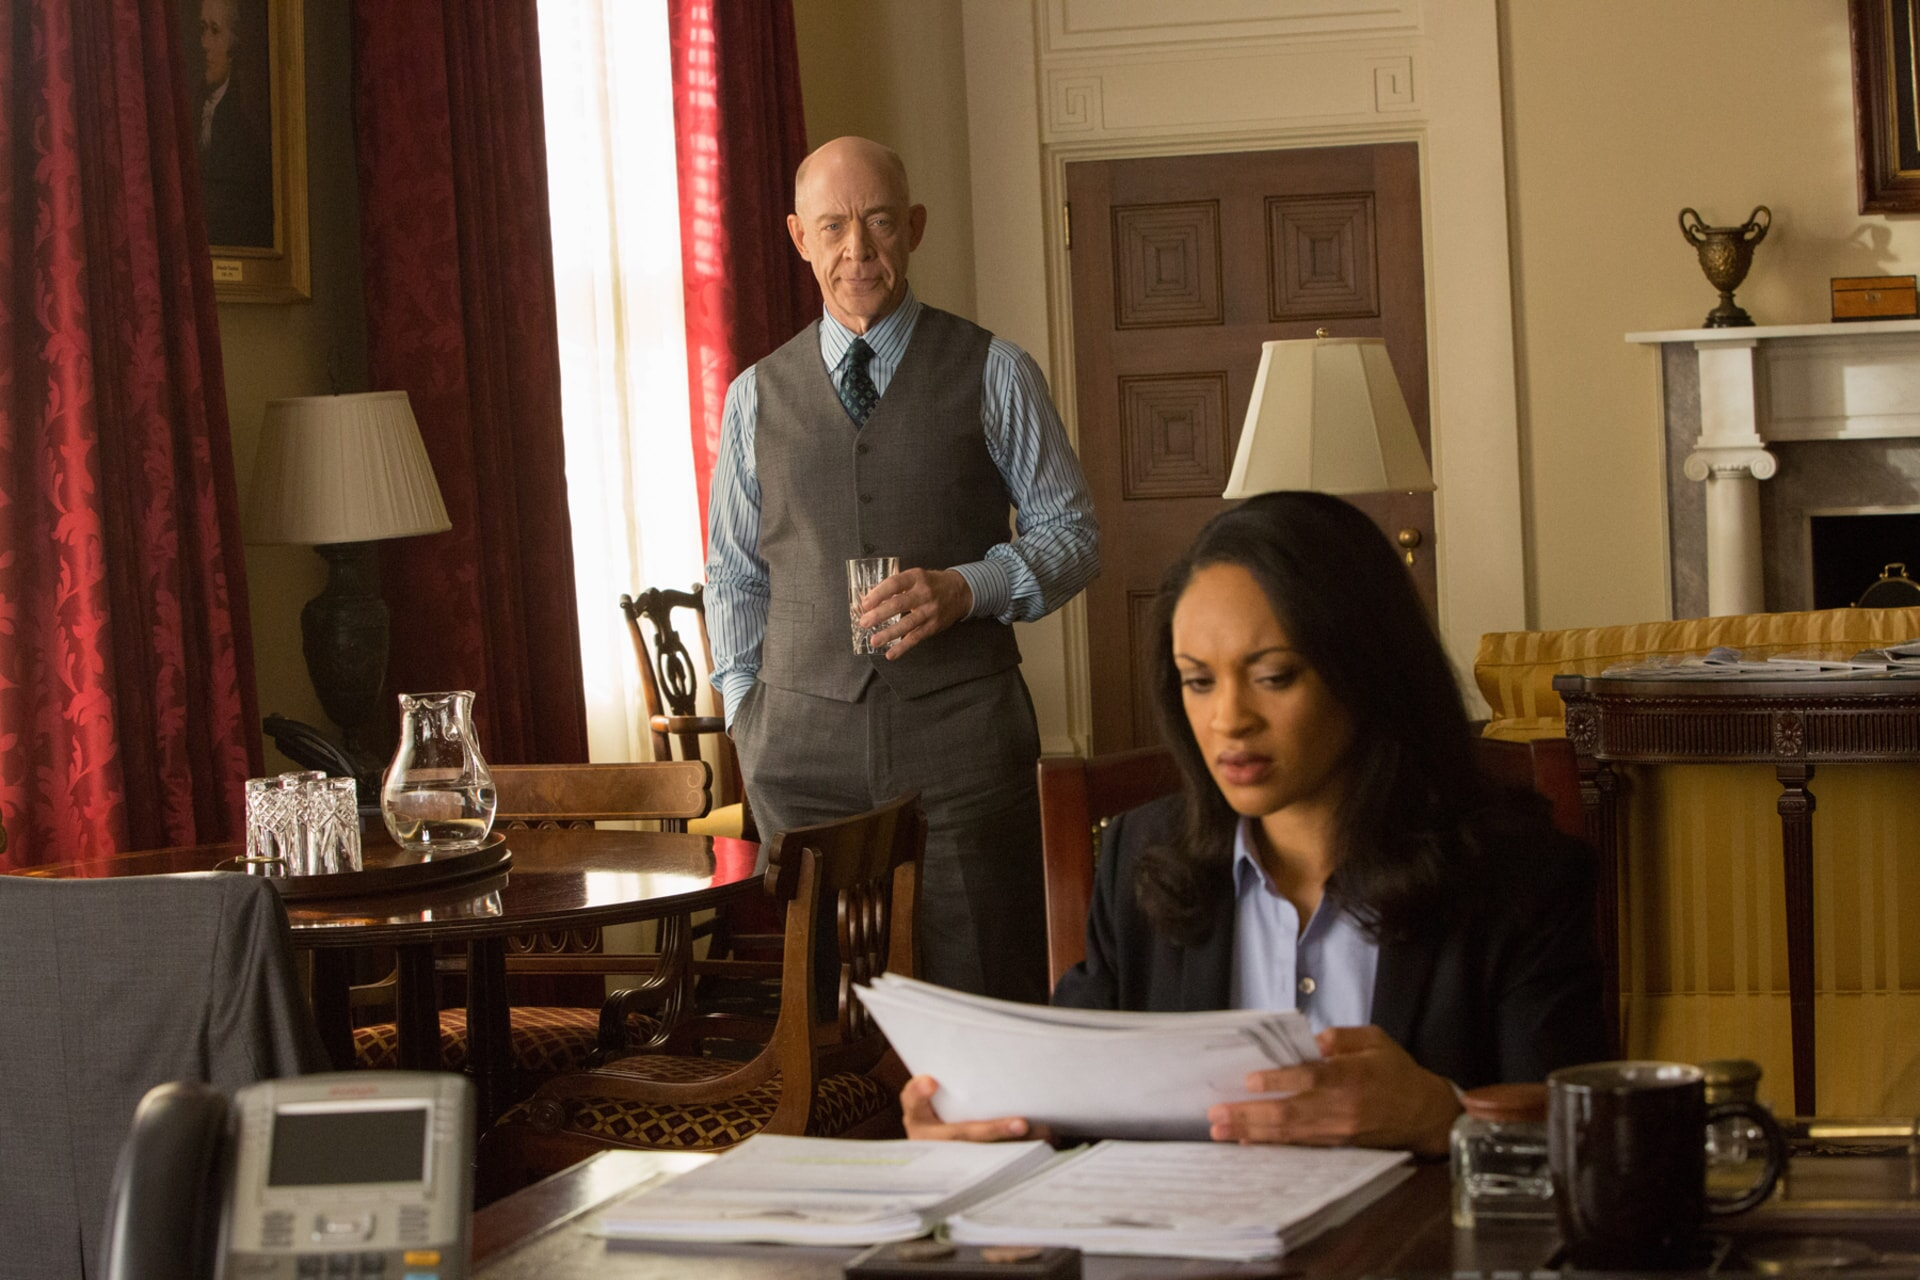 """J.K. SIMMONS as Ray King and CYNTHIA ADDAI-ROBINSON as Marybeth Medina in Warner Bros. Pictures' """"THE ACCOUNTANT,"""" a Warner Bros. Pictures release."""